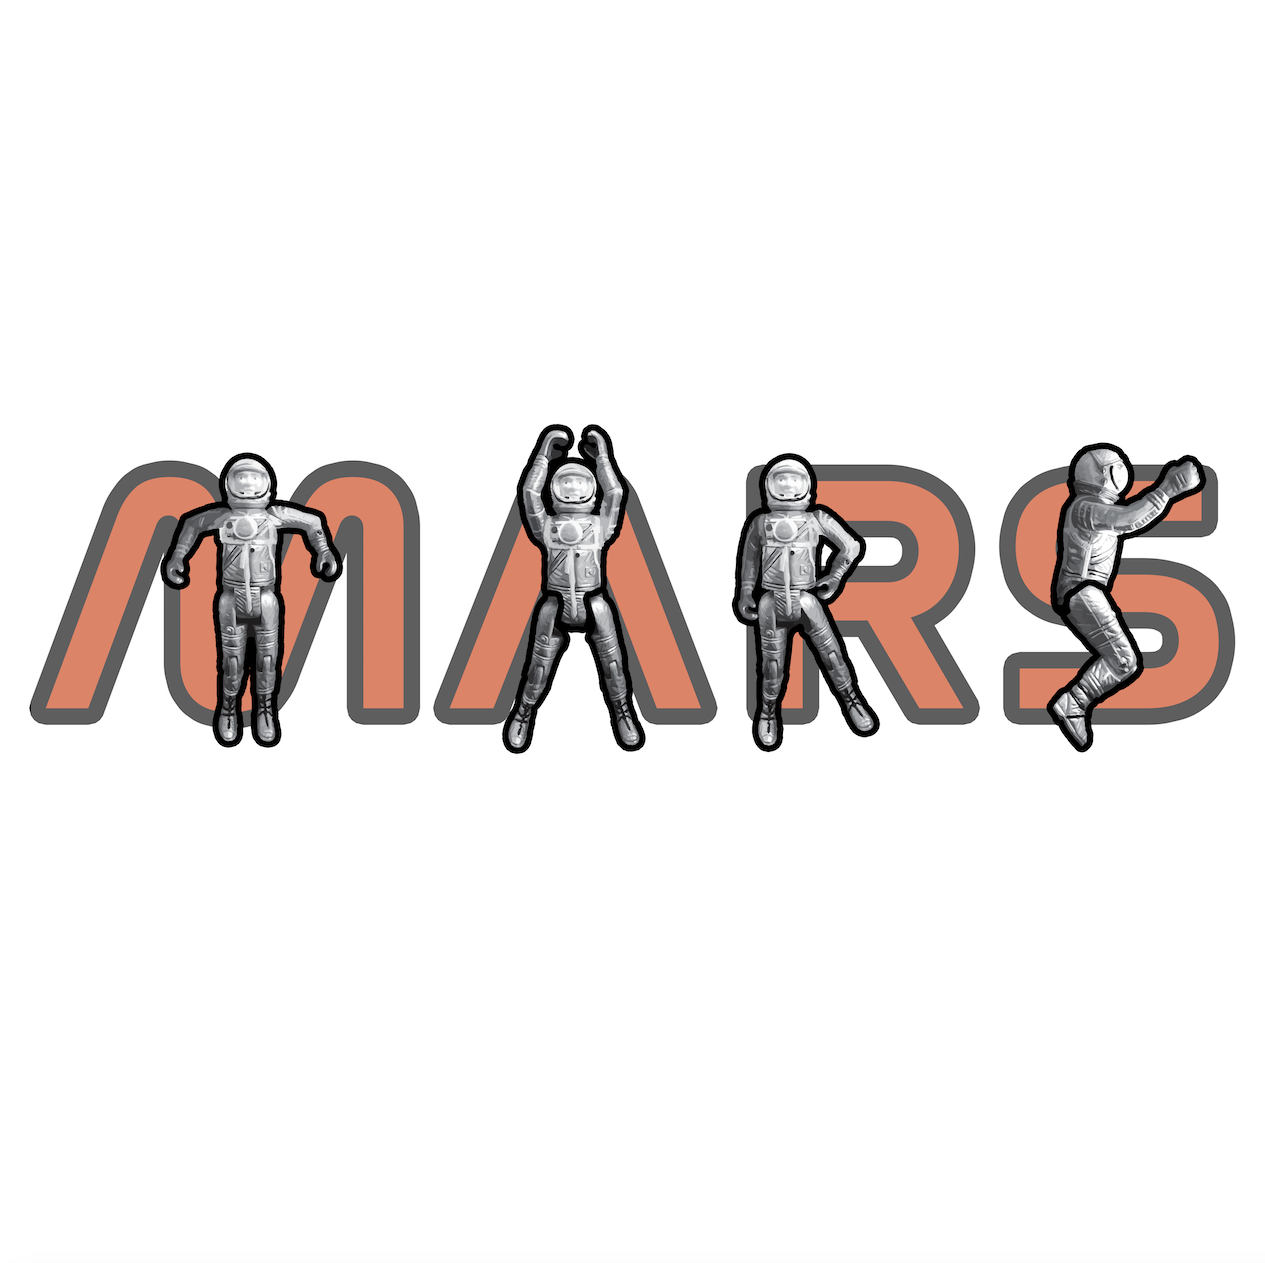 M-A-R-S... Go... to MARS!